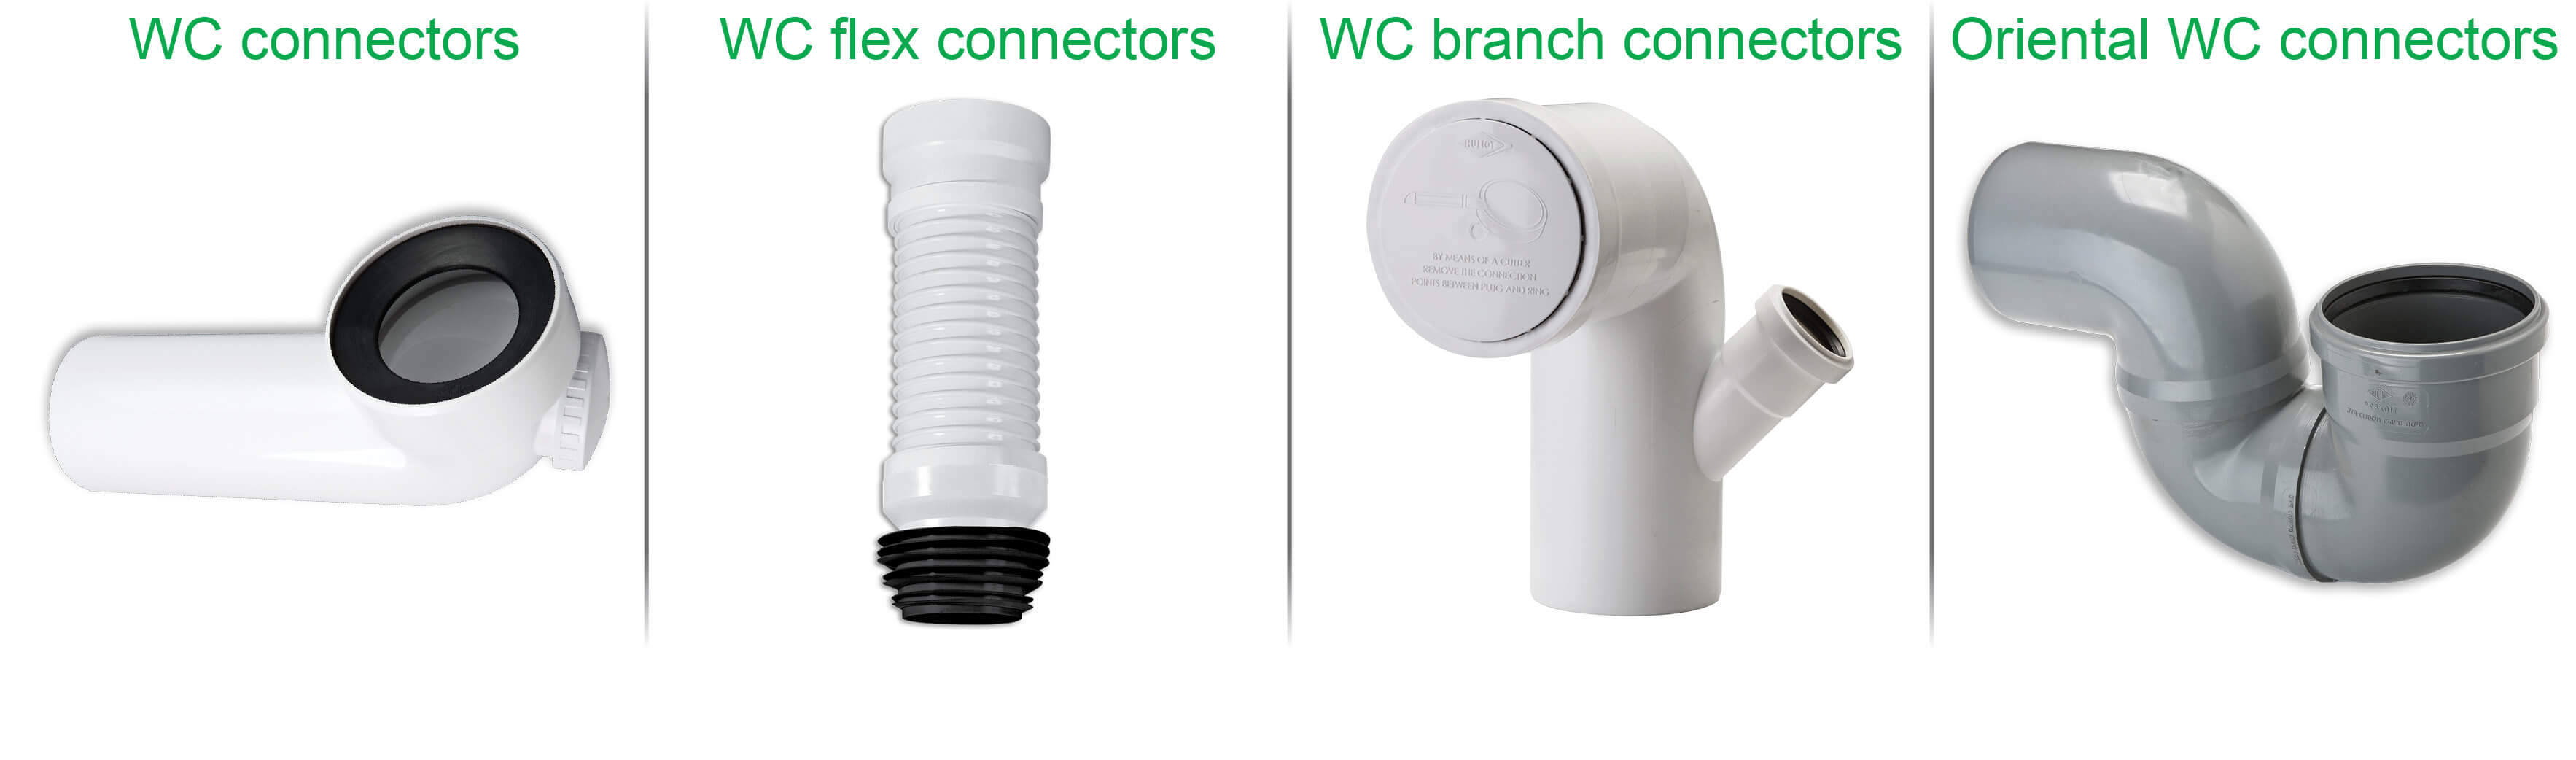 WC Connectors